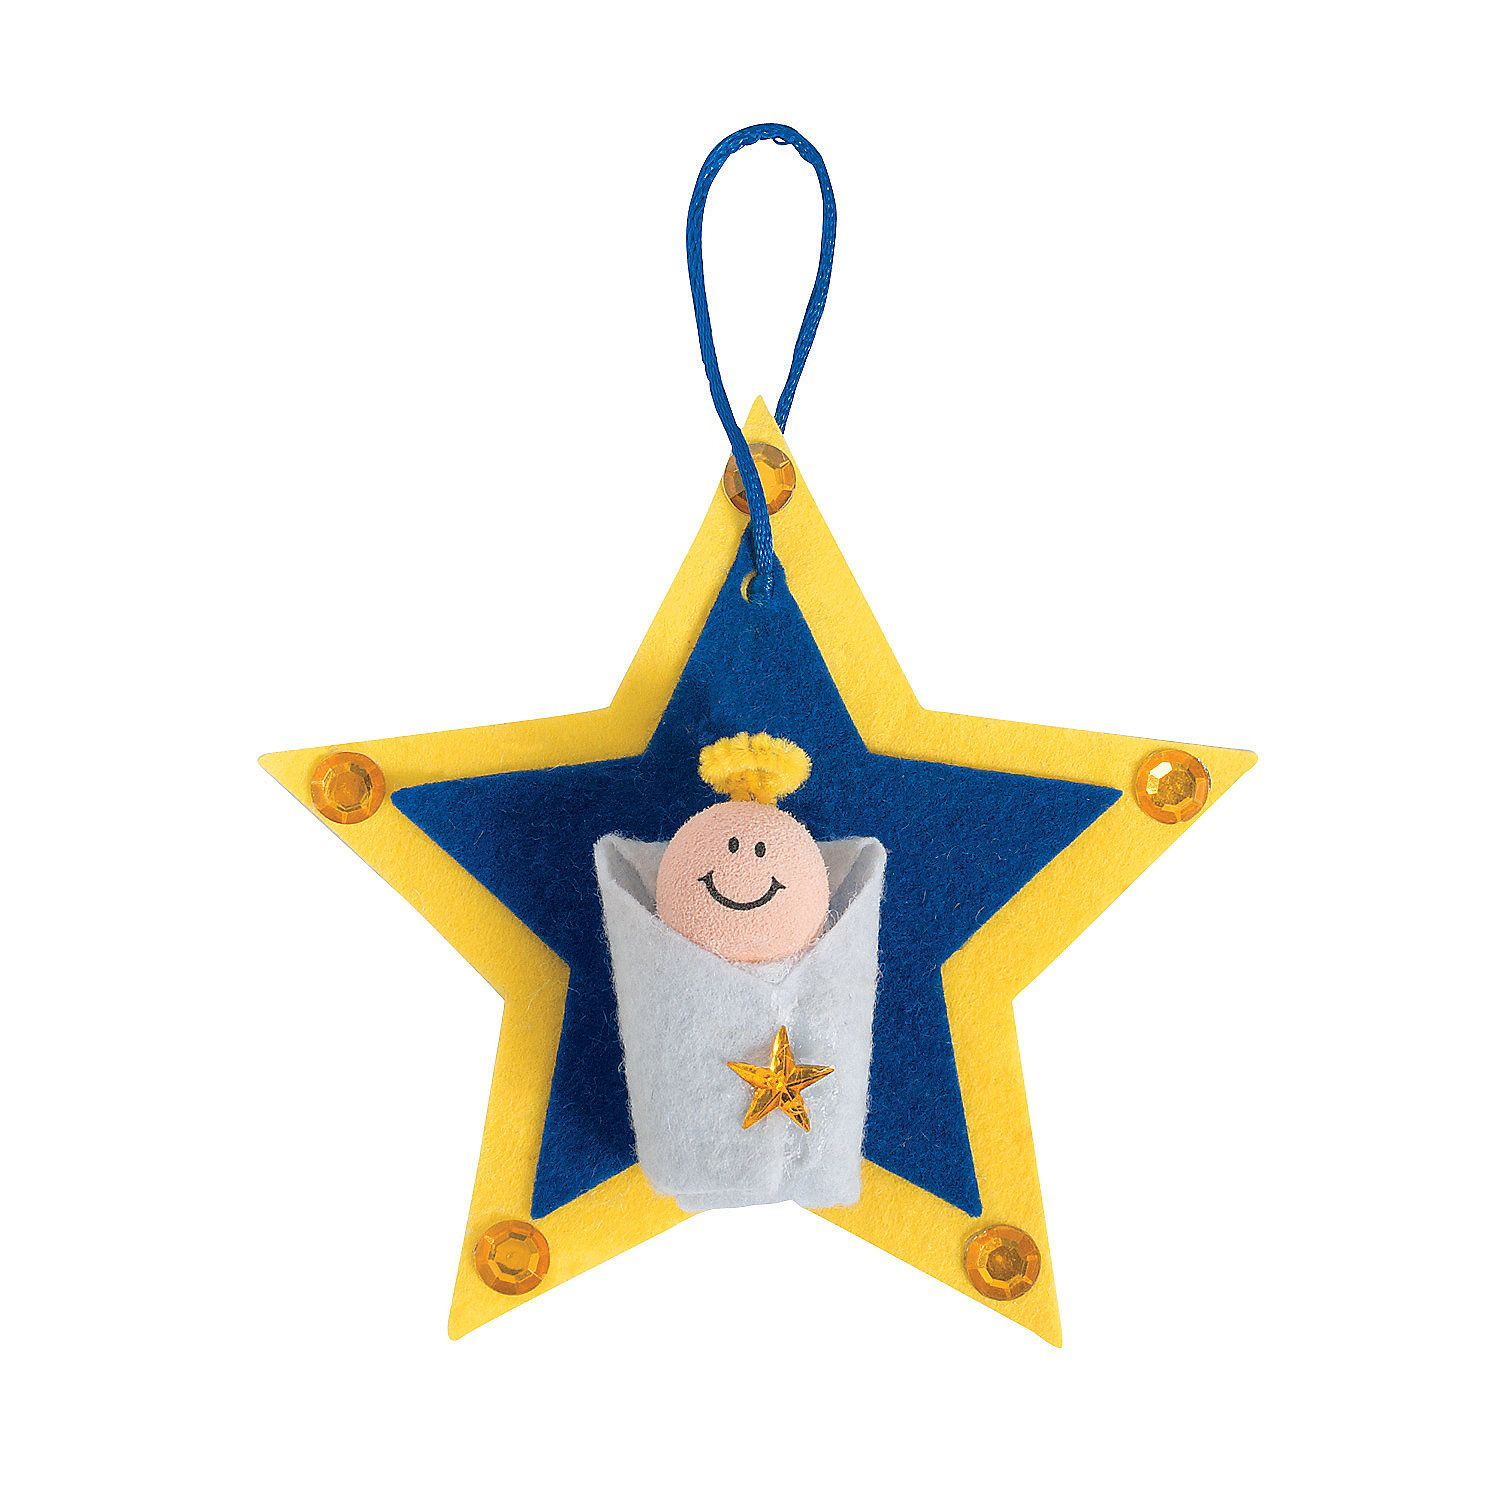 Baby Jesus Star Ornament Craft Kit - OrientalTrading.com $5 for 12